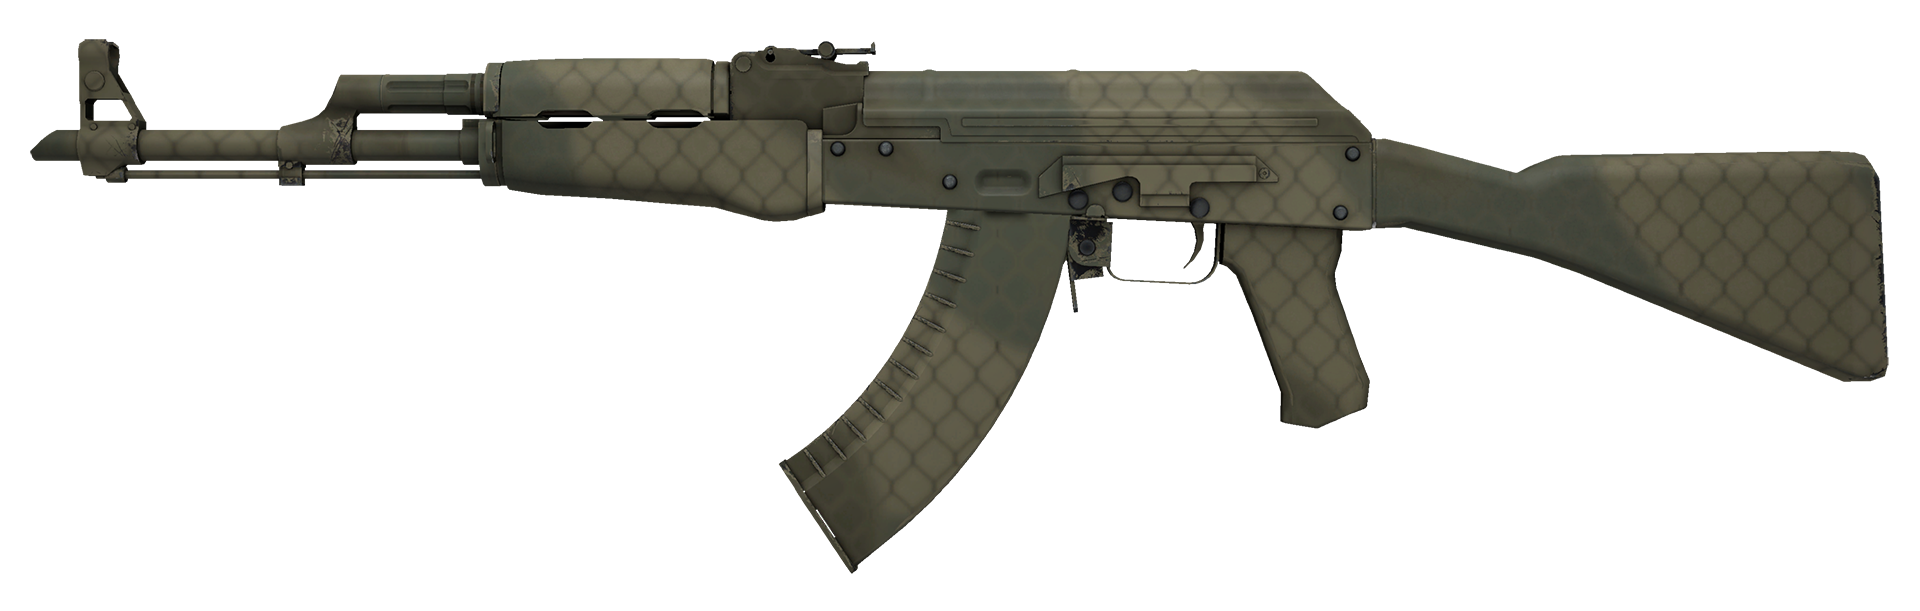 AK-47 Safari Mesh Large Rendering